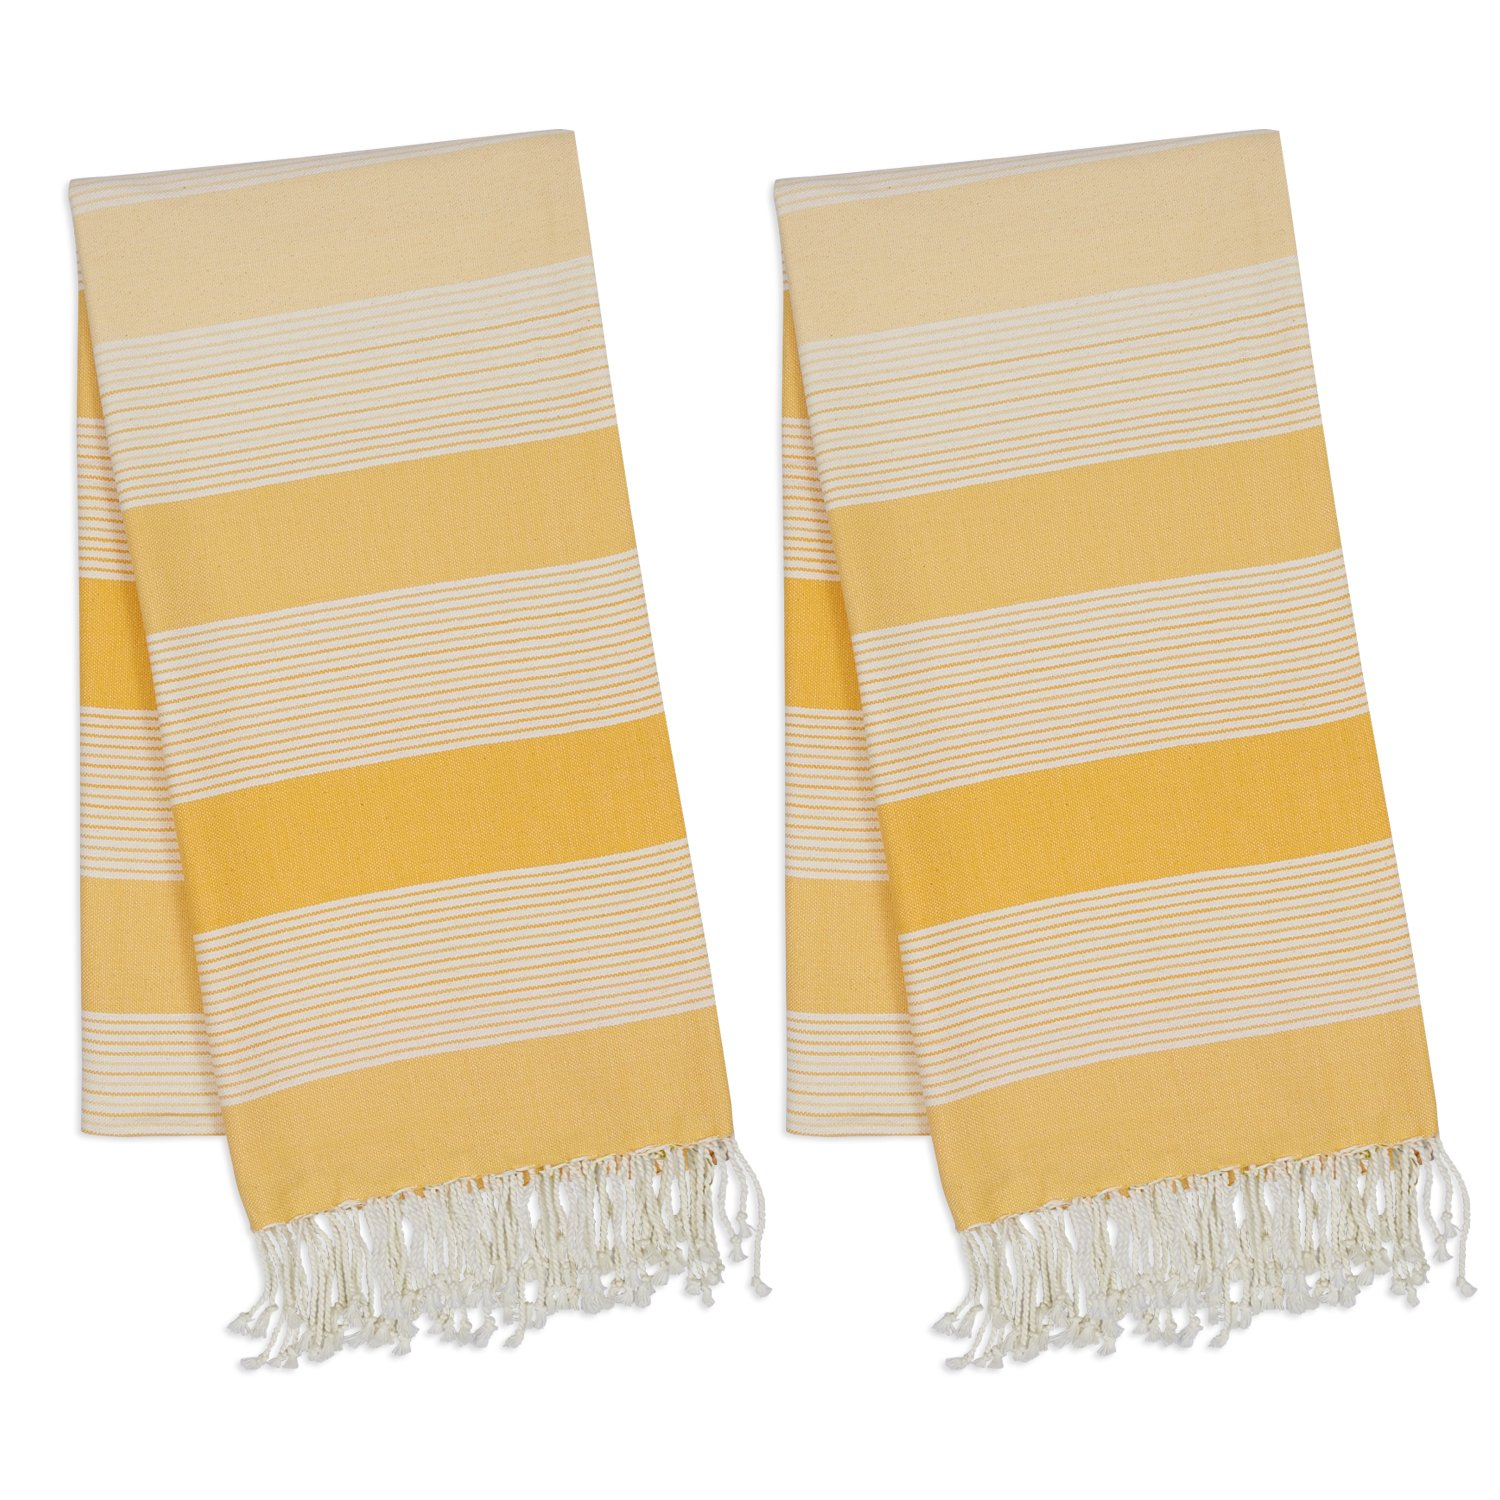 DII 100% Cotton, Turkish Fouta Towel, Fast Drying, Ultra Soft & Absorbent, Every Home Basic, Multi Use Towel/Table Topper, 20 x 30, Set of 2 - Yellow Stripe